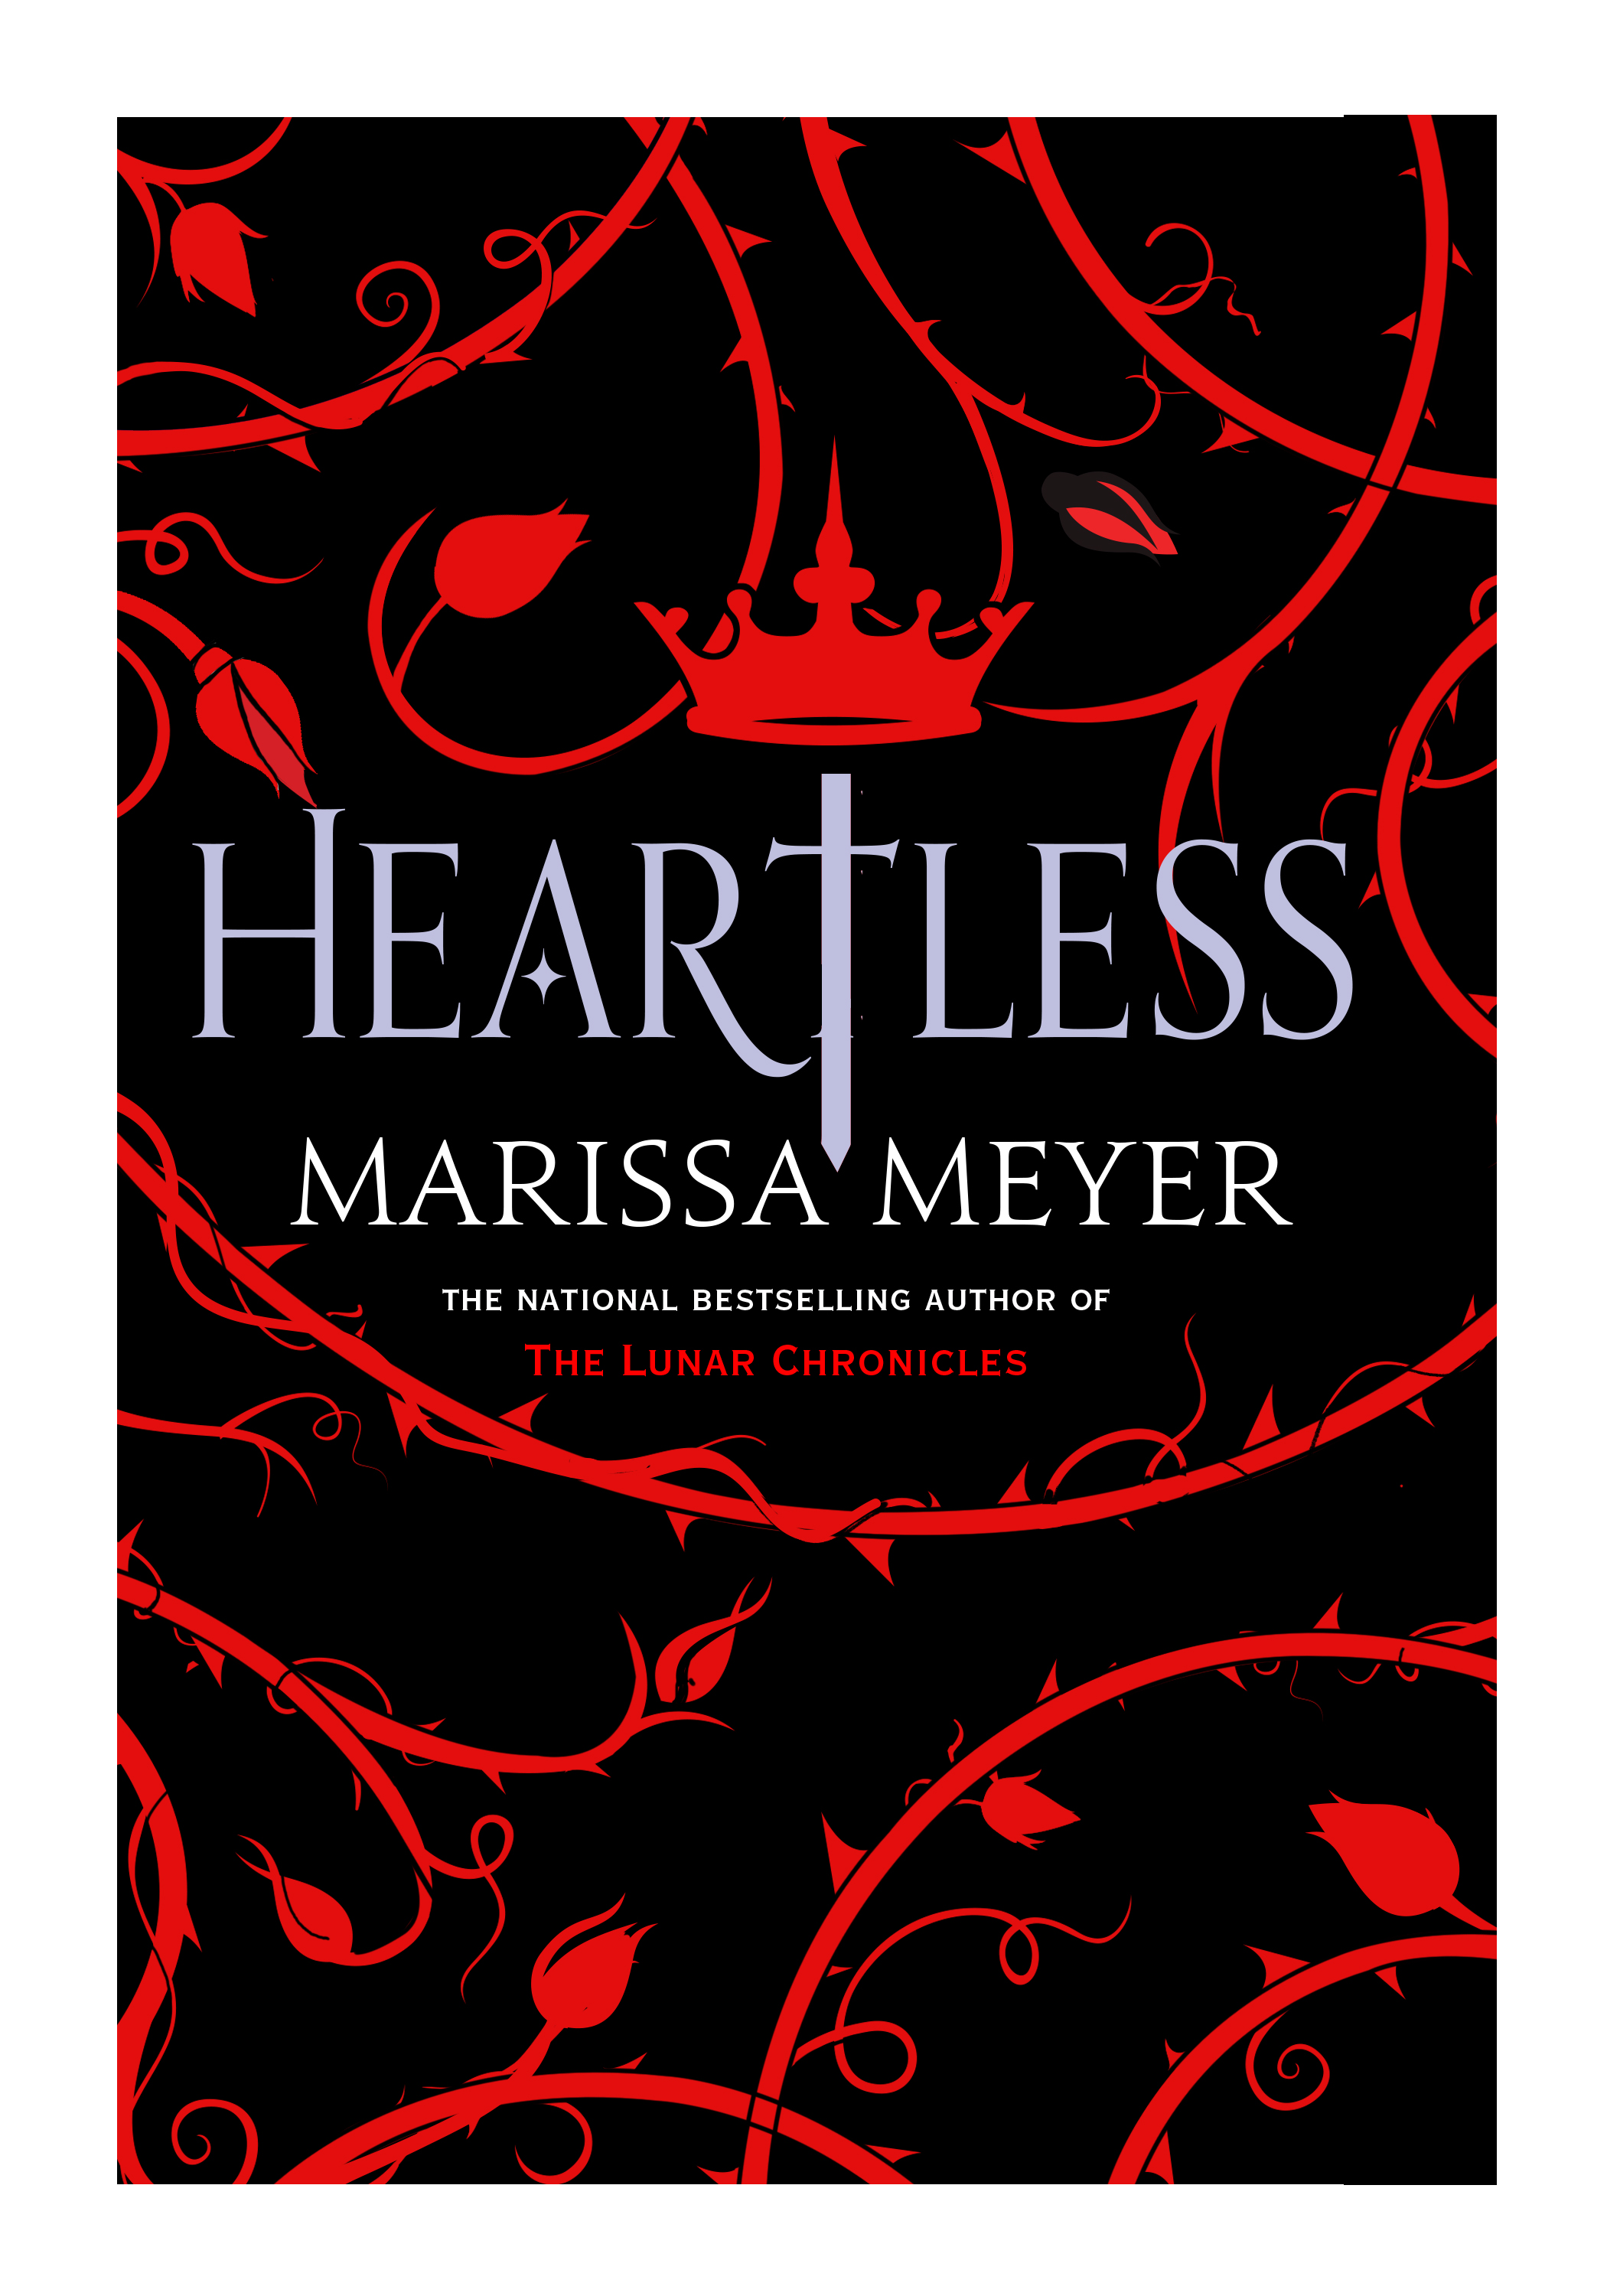 Book Cover Drawing Quotes : Heartless marissa meyer